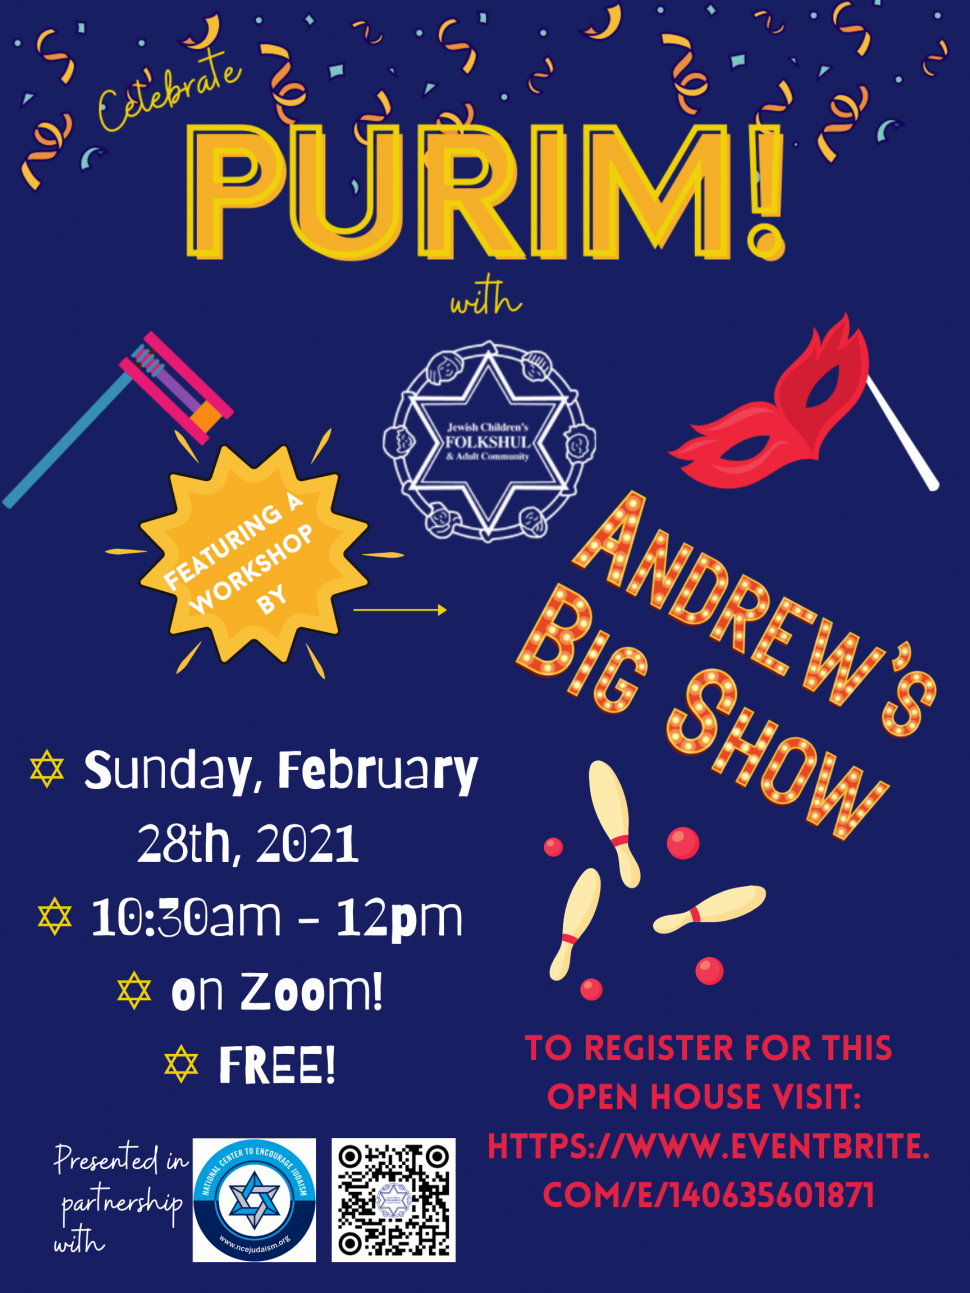 2021 Community Christmas Concert Rochester Purim Open House With Folkshul Kids Out And About Rochester